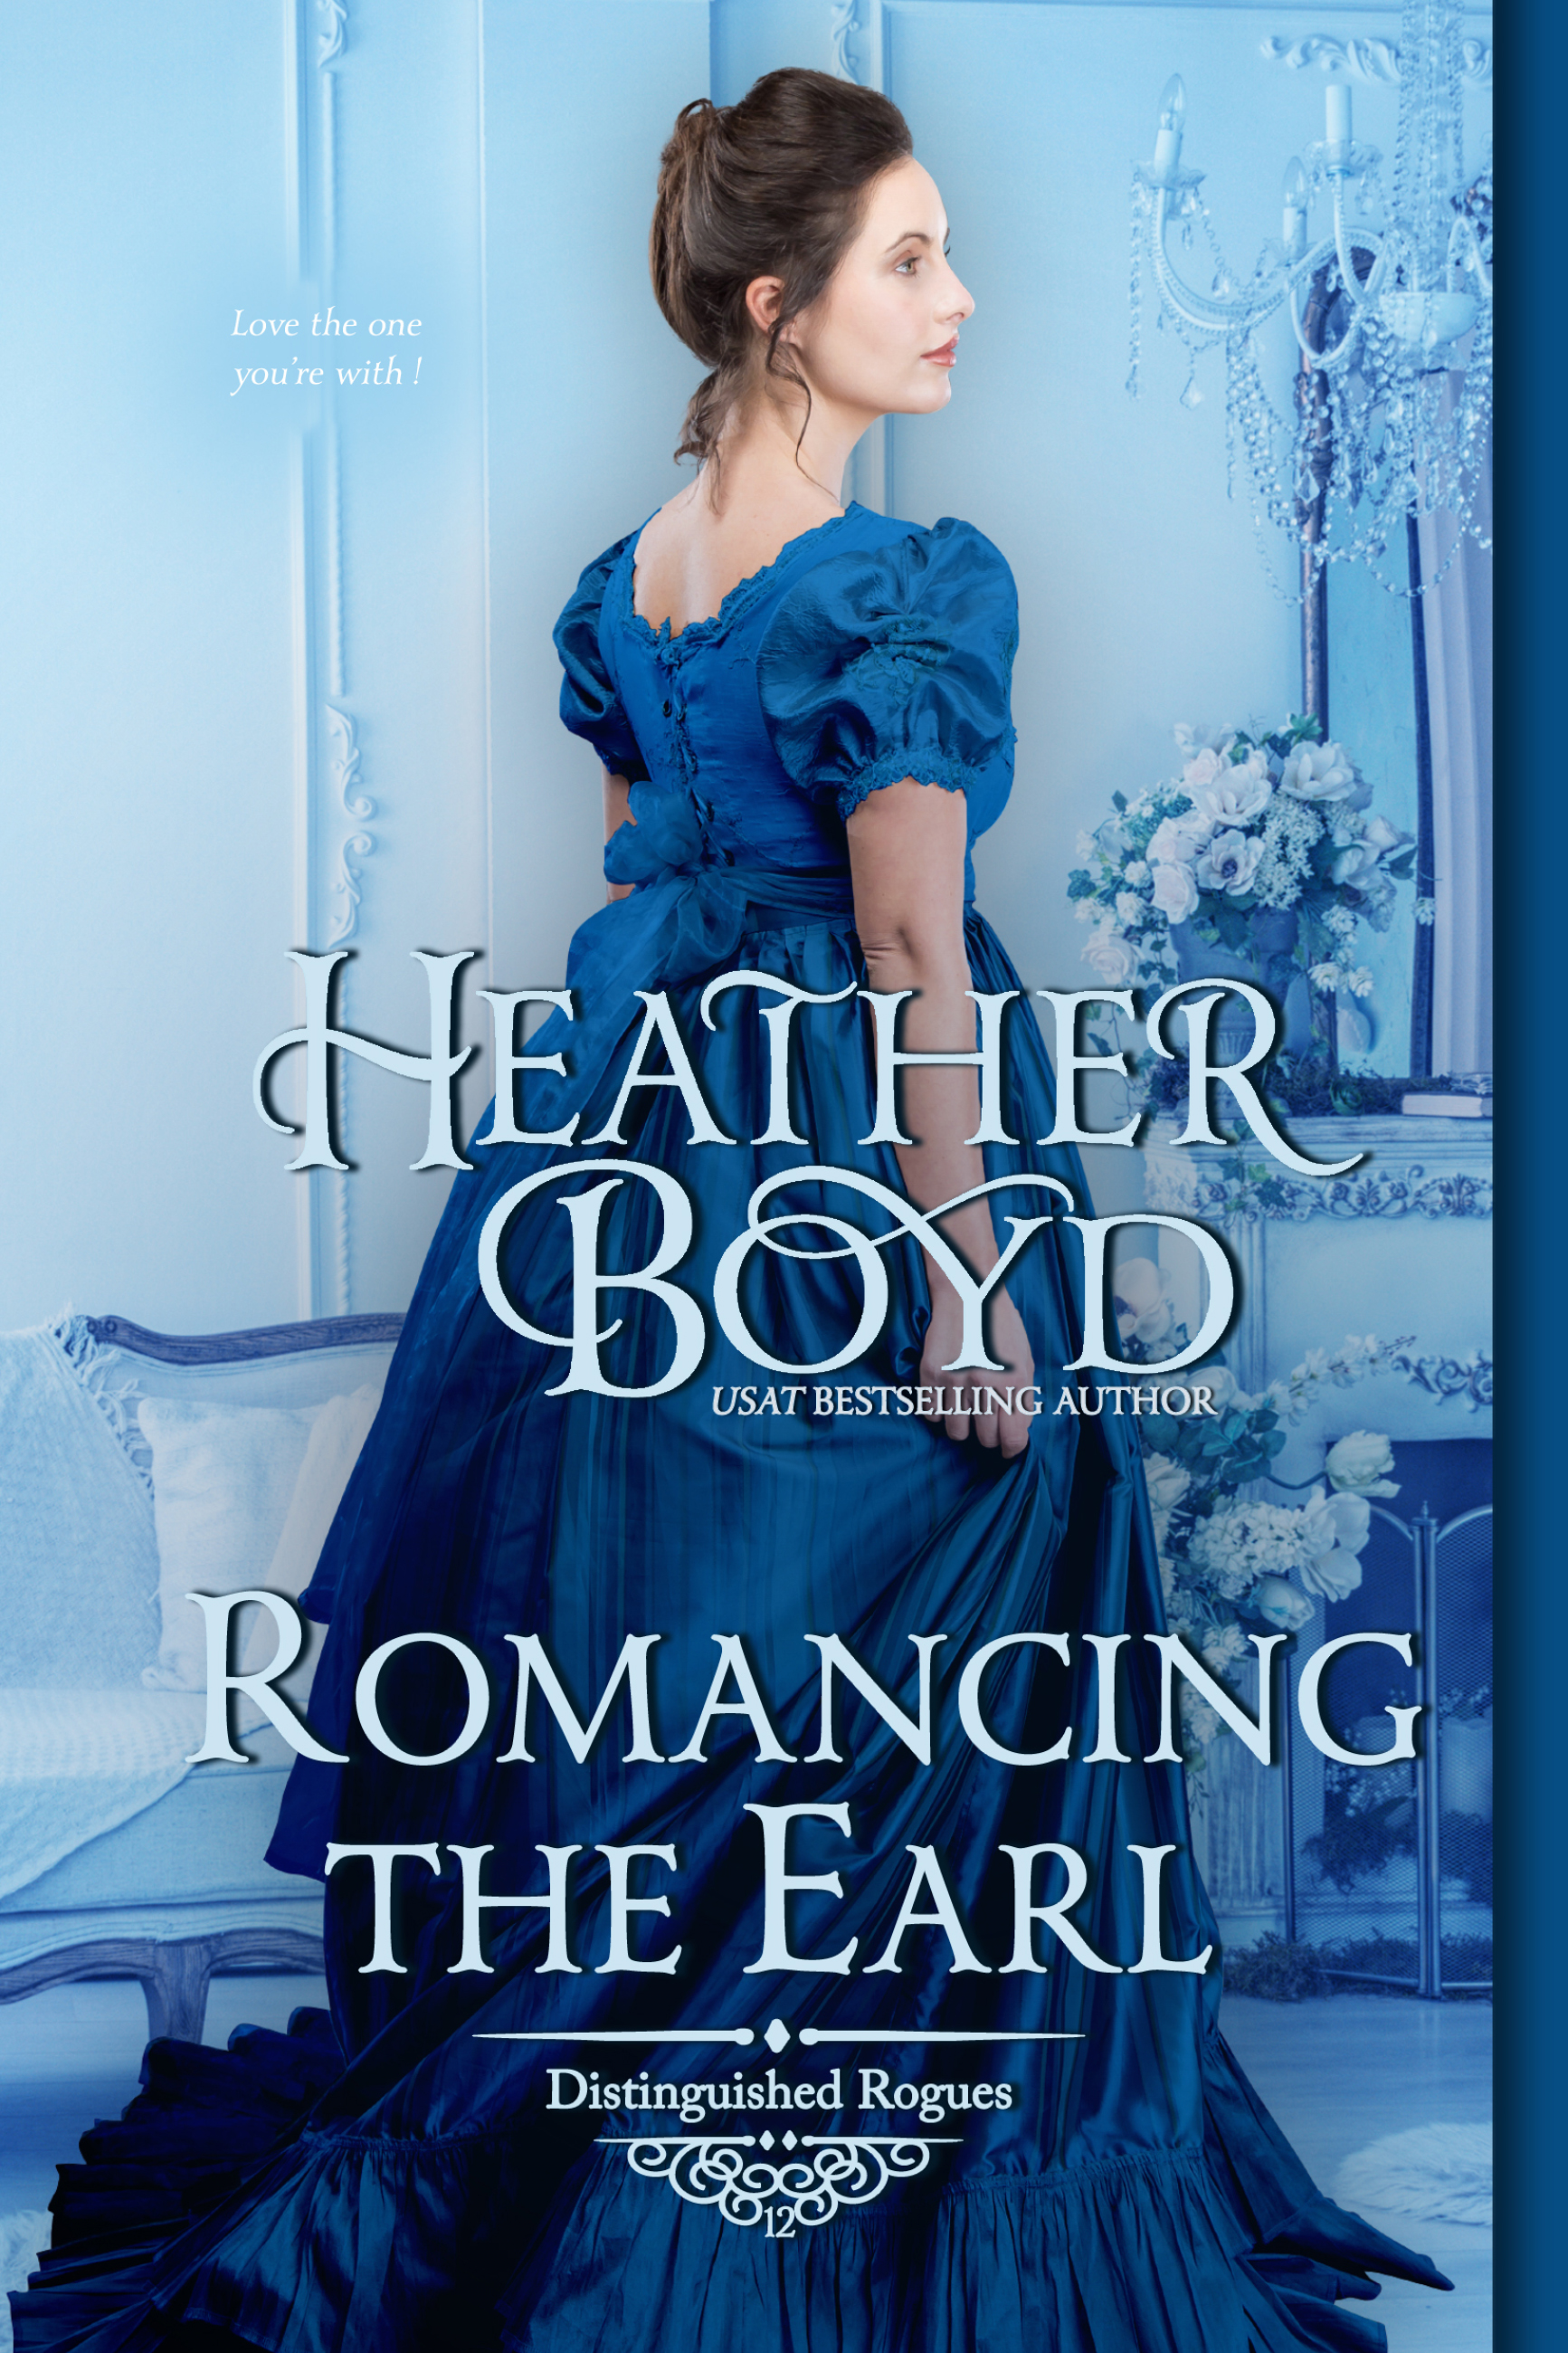 Romancing the Earl Heather Boyd